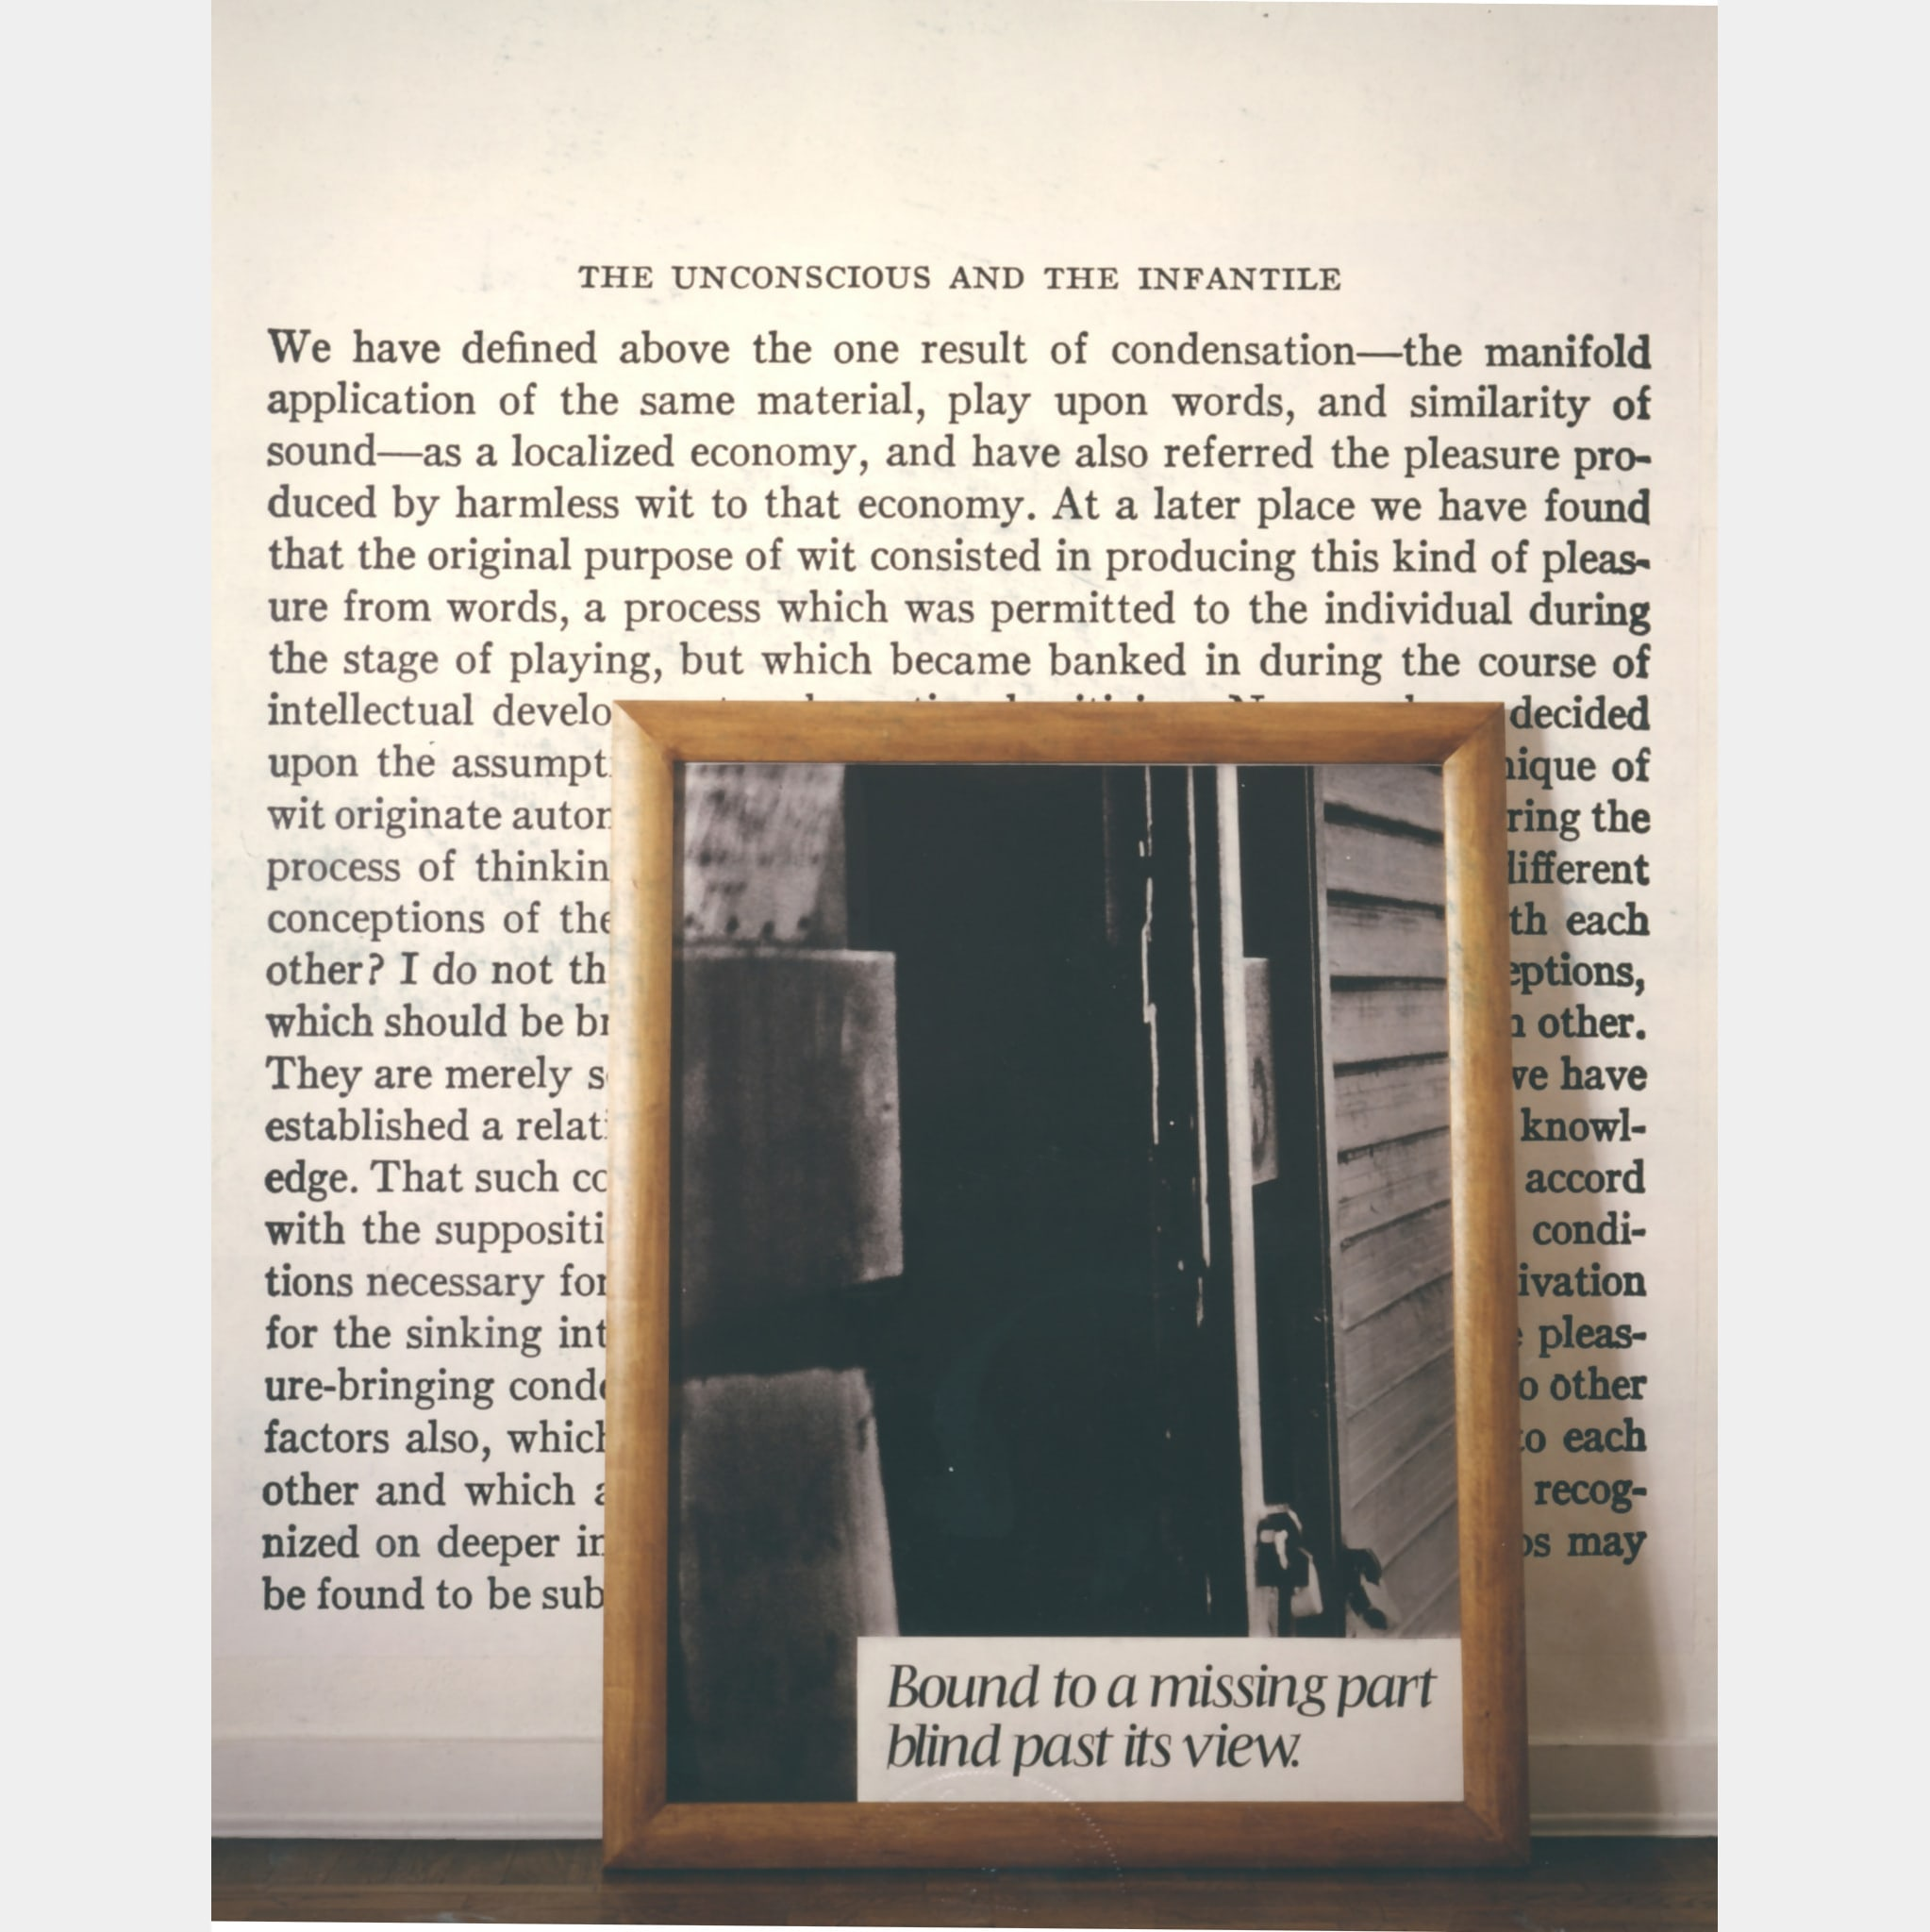 O. & A. / F. D. (to I.K. and G.F.) No. 13 by Joseph Kosuth